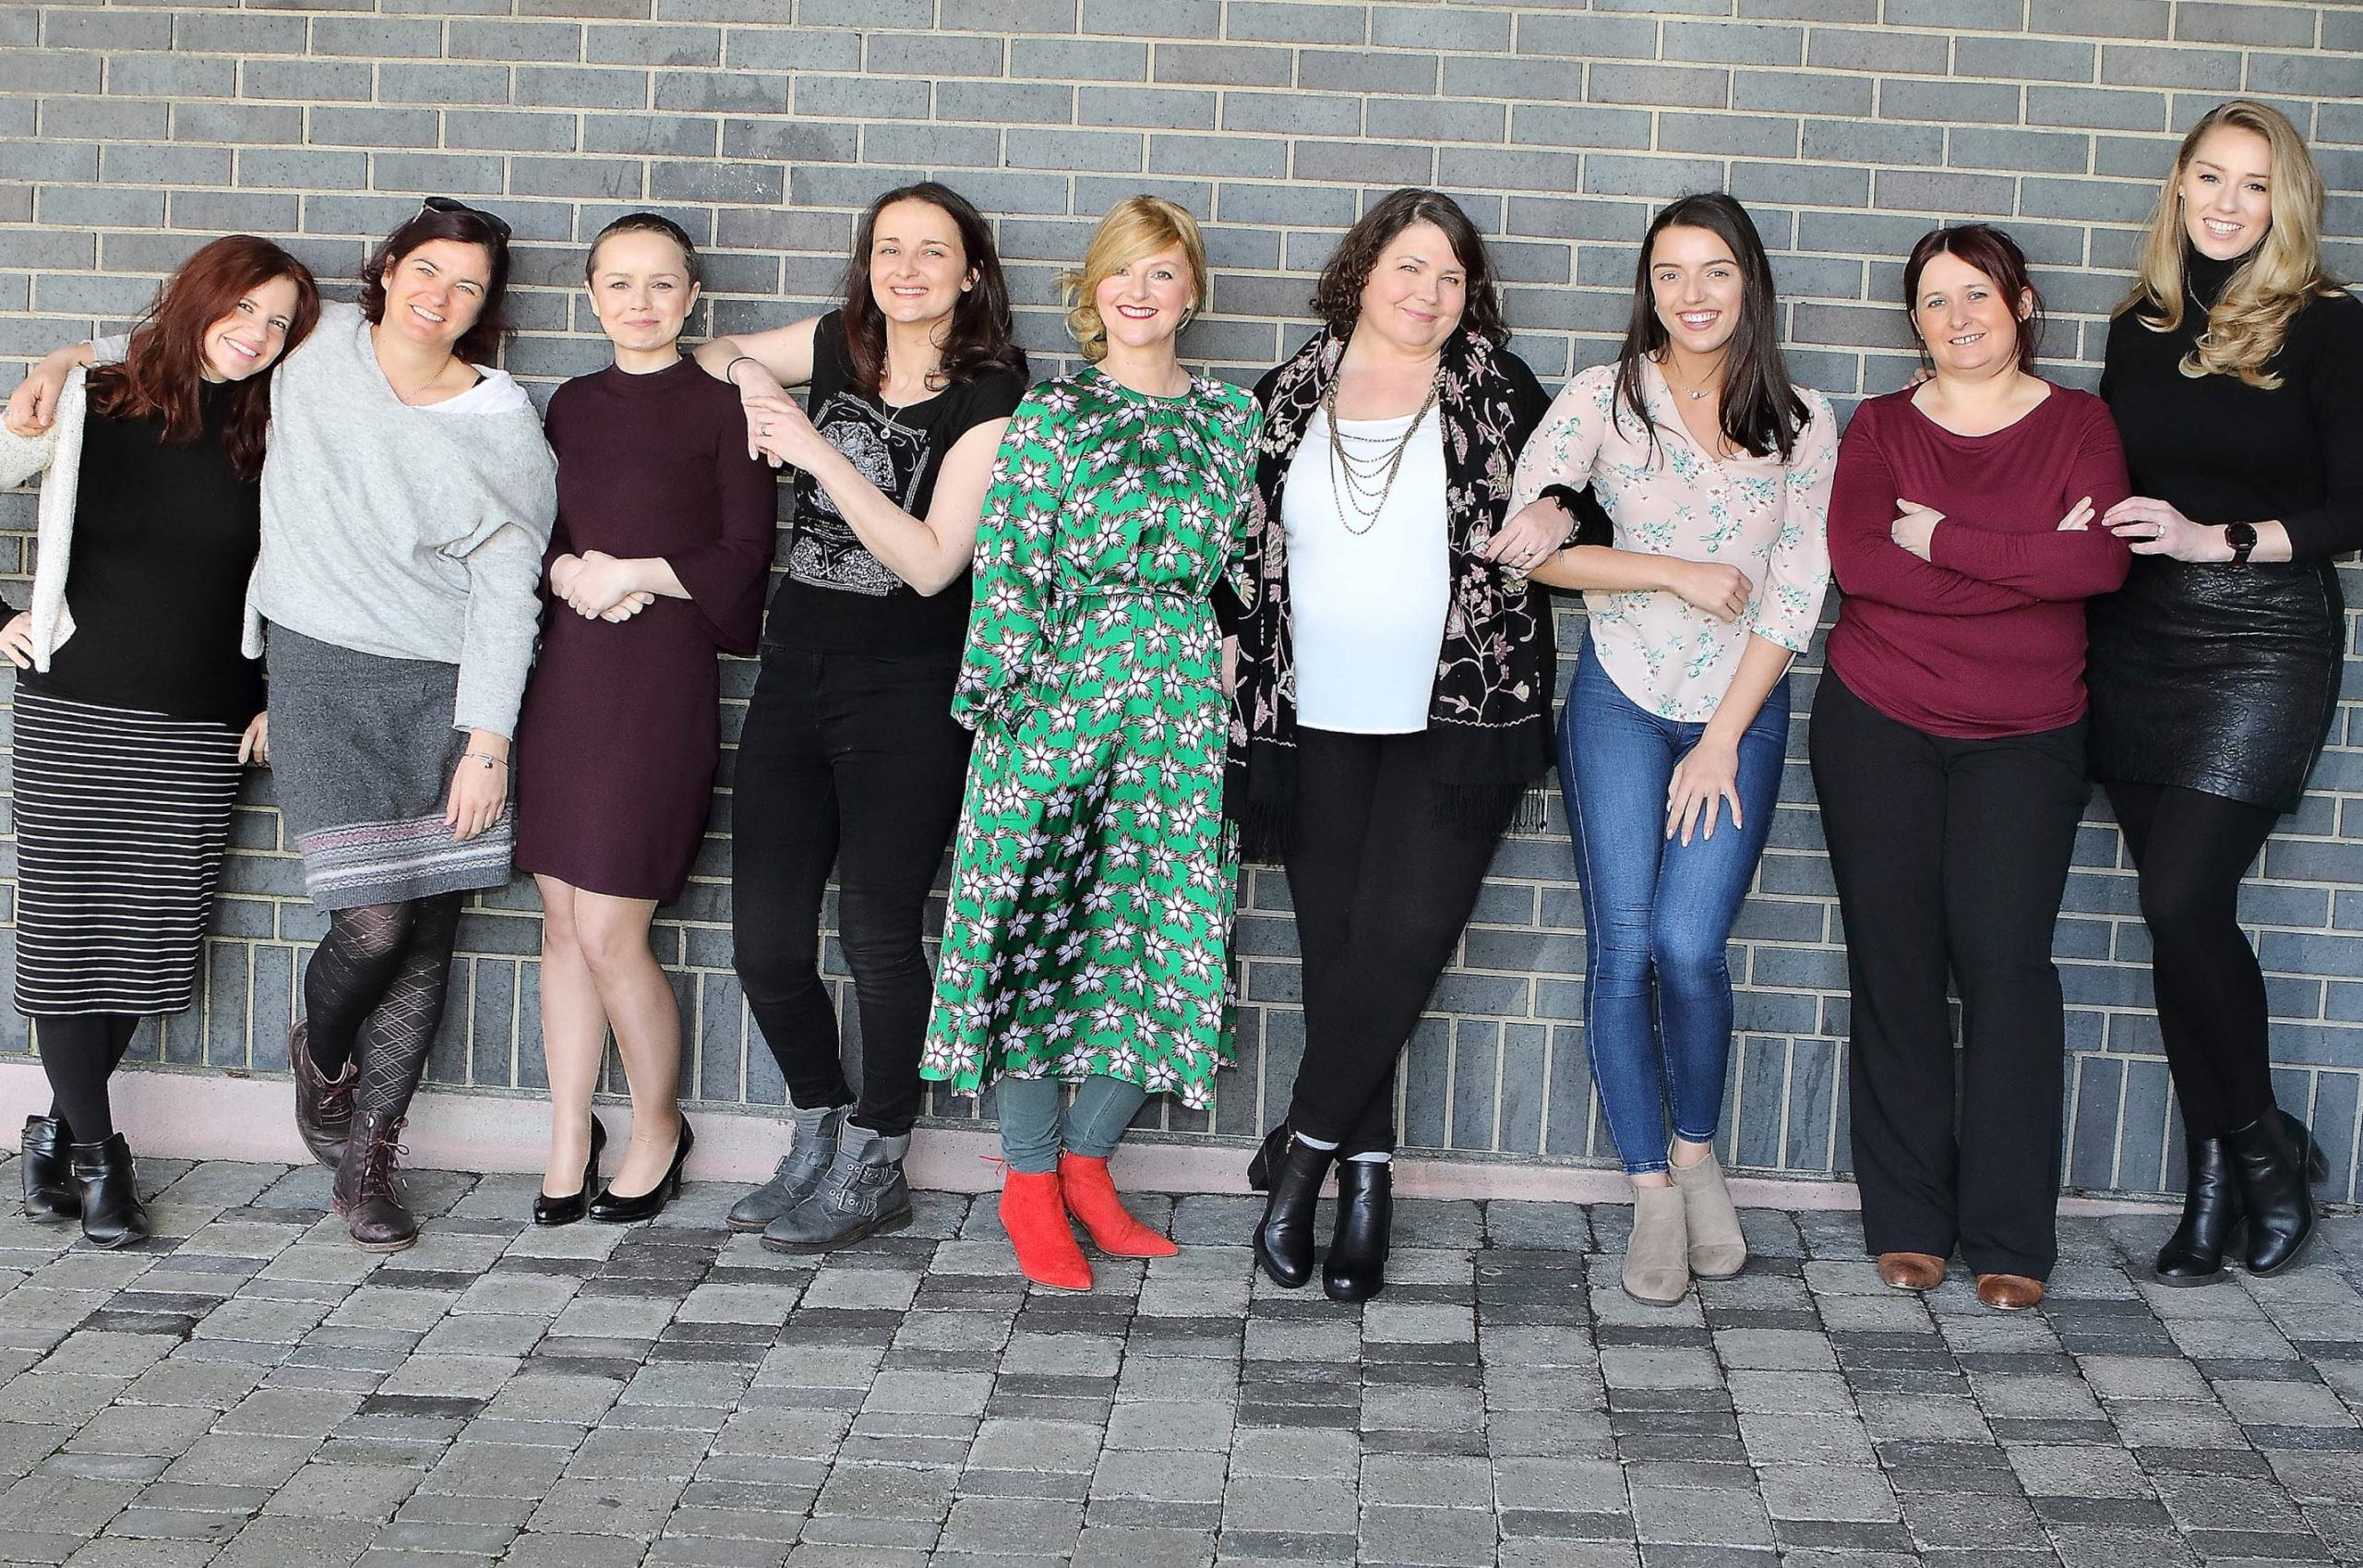 WLR celebrates International Women's Day with all women line-up